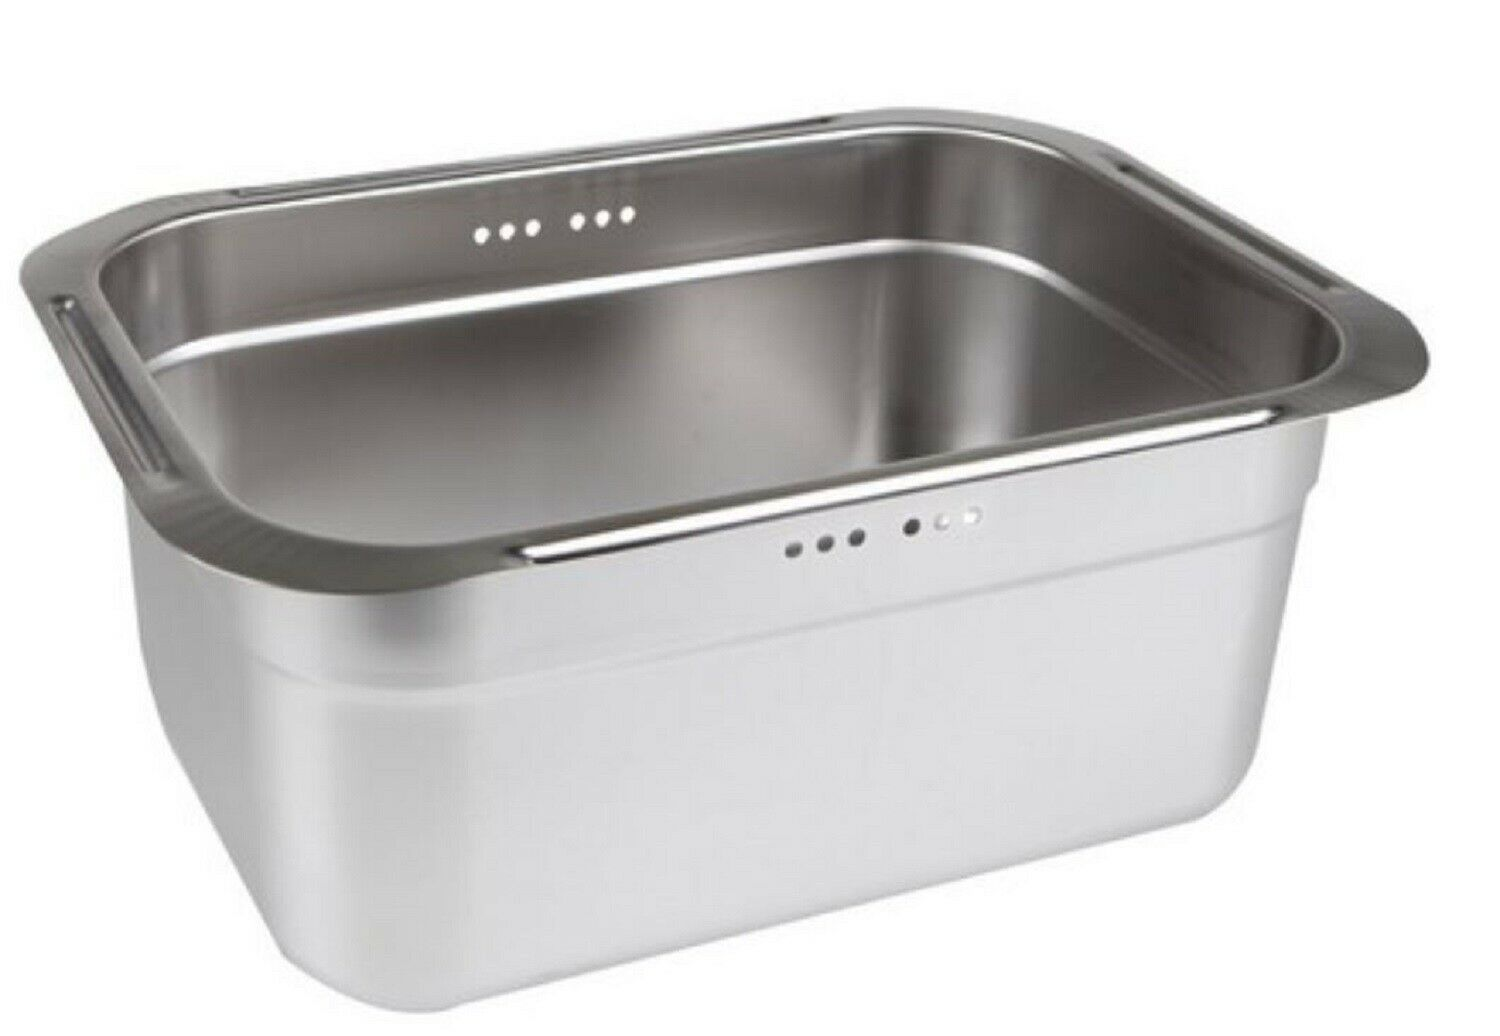 Incoc Stainless Steel Basin Bucket Dishpan Dish Washing Bowl Basket (Large)